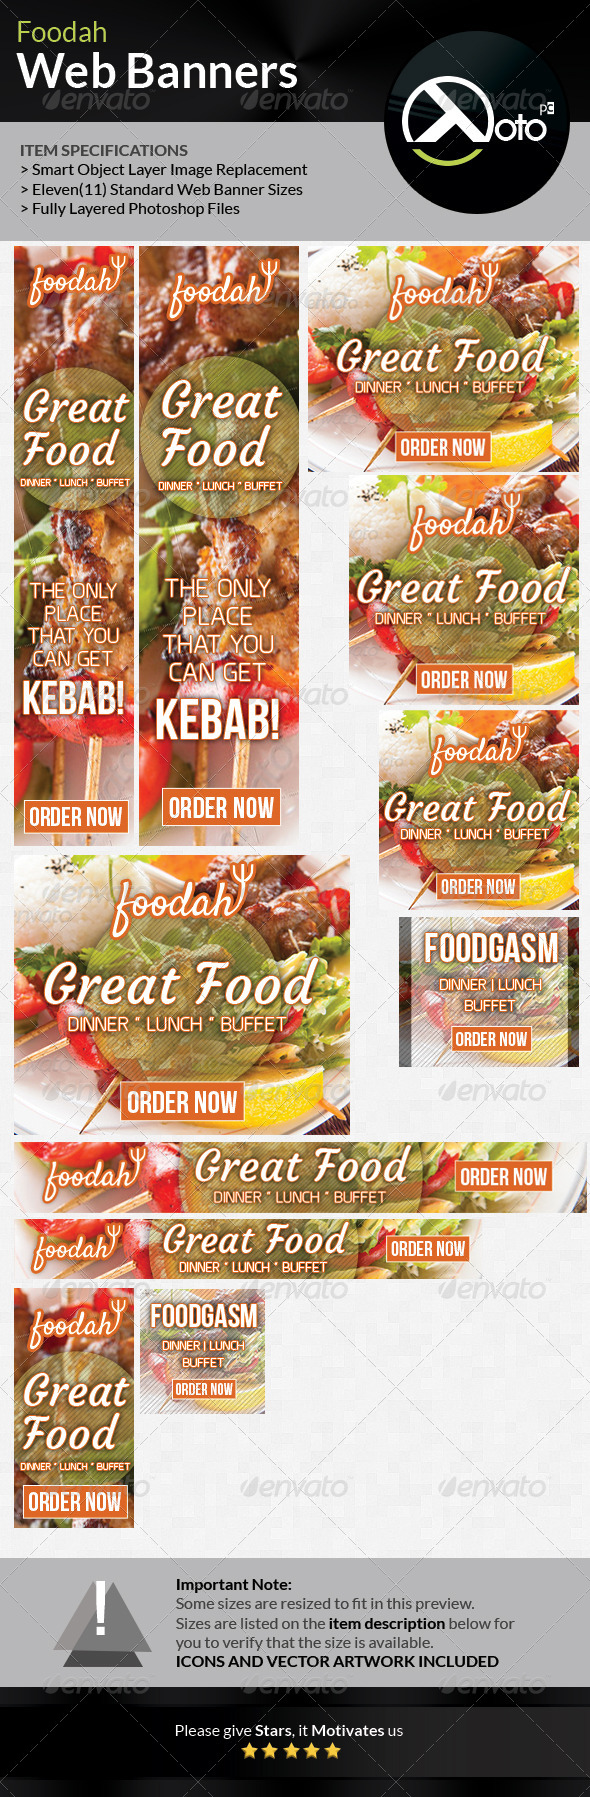 GraphicRiver Foodah Online Restaurant Web Banners 7462683